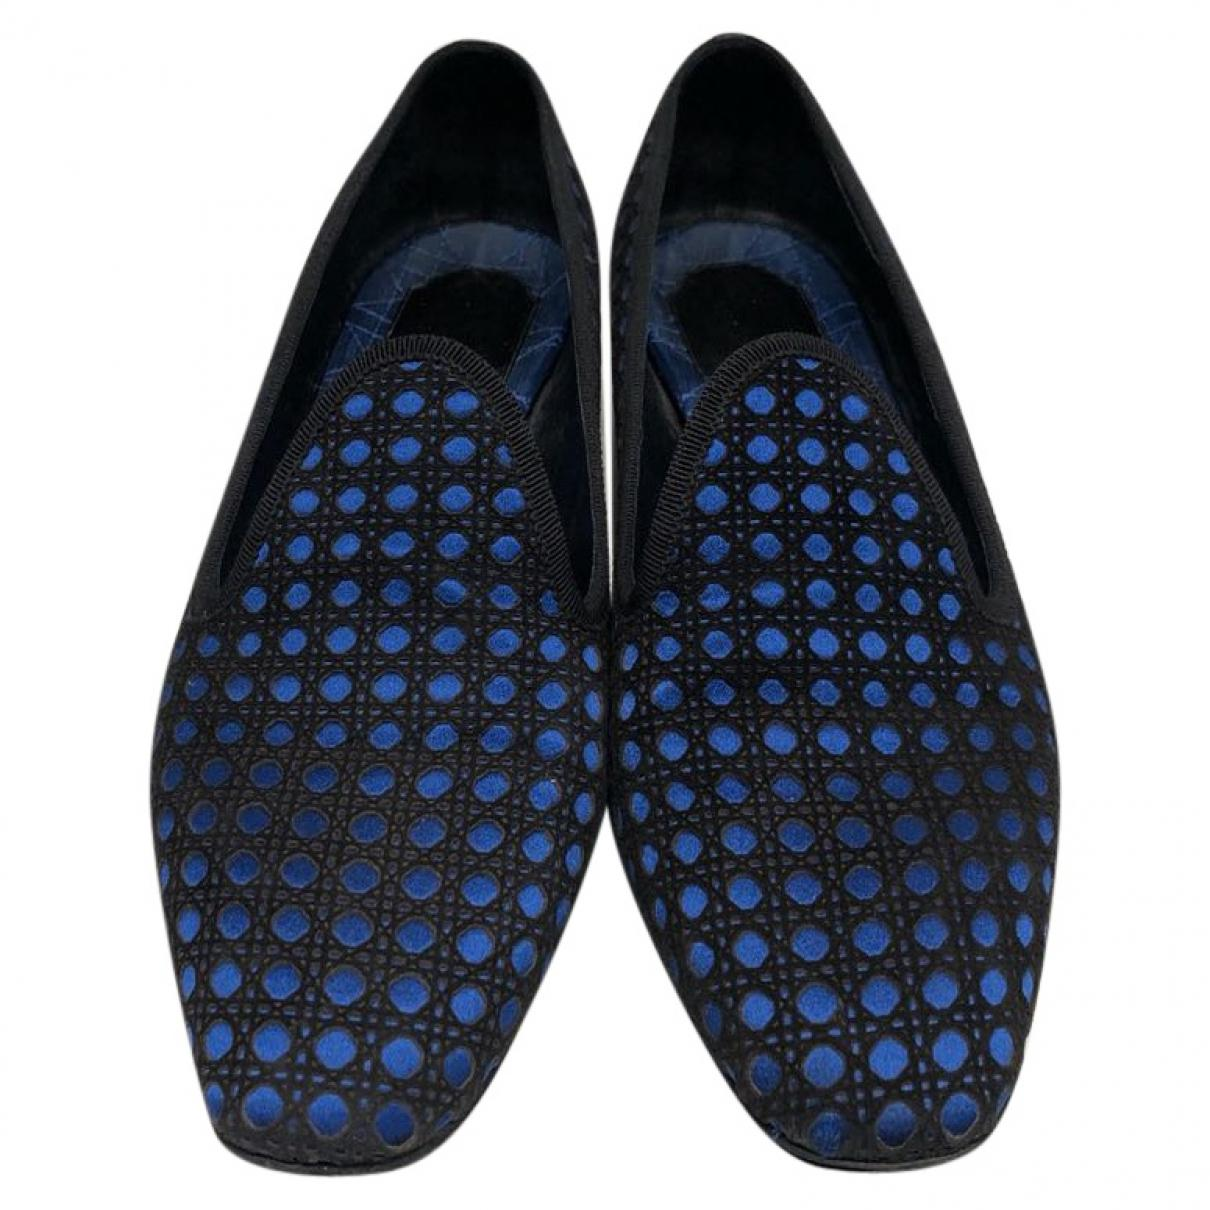 0290d7bb269 Dior. Women s Blue Flats. £257 From Vestiaire Collective